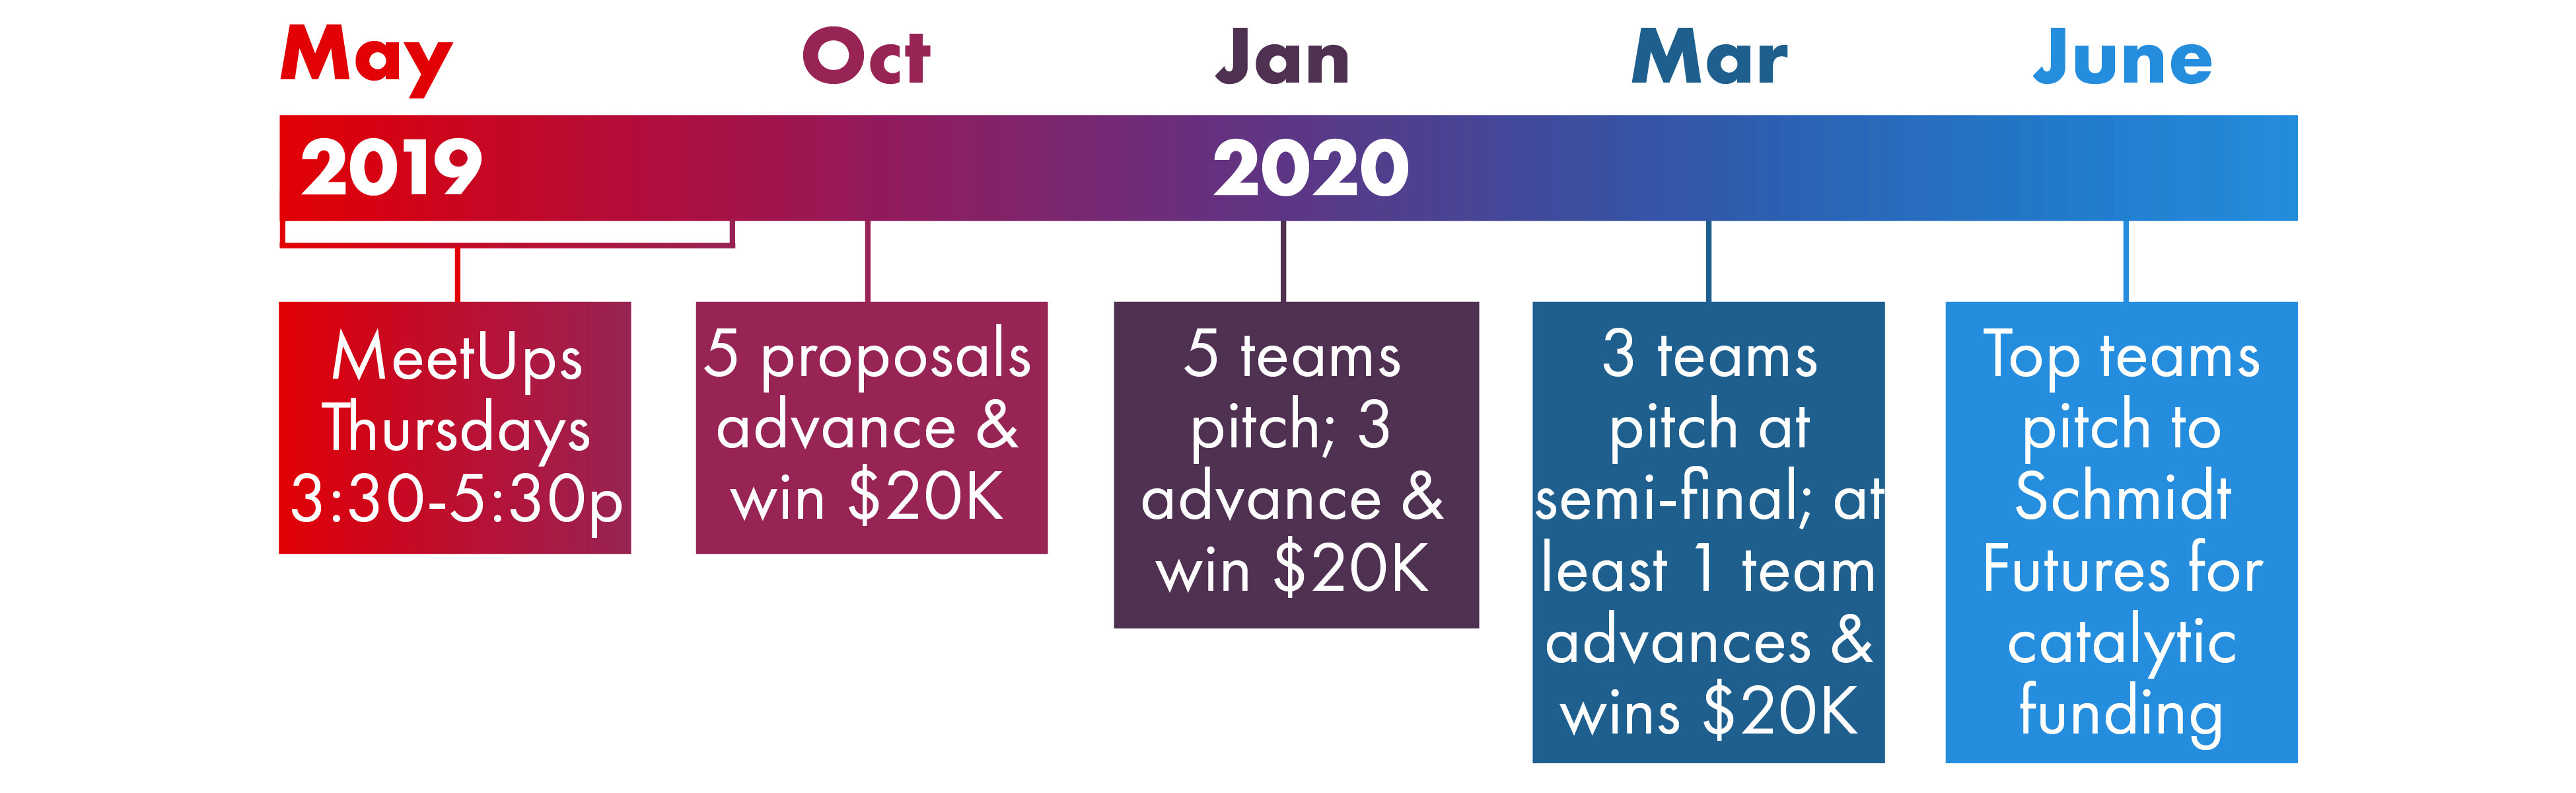 2019 DreamUp Wisconsin Challenge Timeline. May 2019: MeetUps Thursdays 3:30-5:30 pm; October 2019: 5 proposals advance and win $20K; January 2020: 5 teams pitch, 3 advance and win $20K; March 2020: 3 teams pitch at semi-final, at least 1 team advances and wins $20K; June 2020: Top teams pitch to Schmidt Futures for catalytic funding